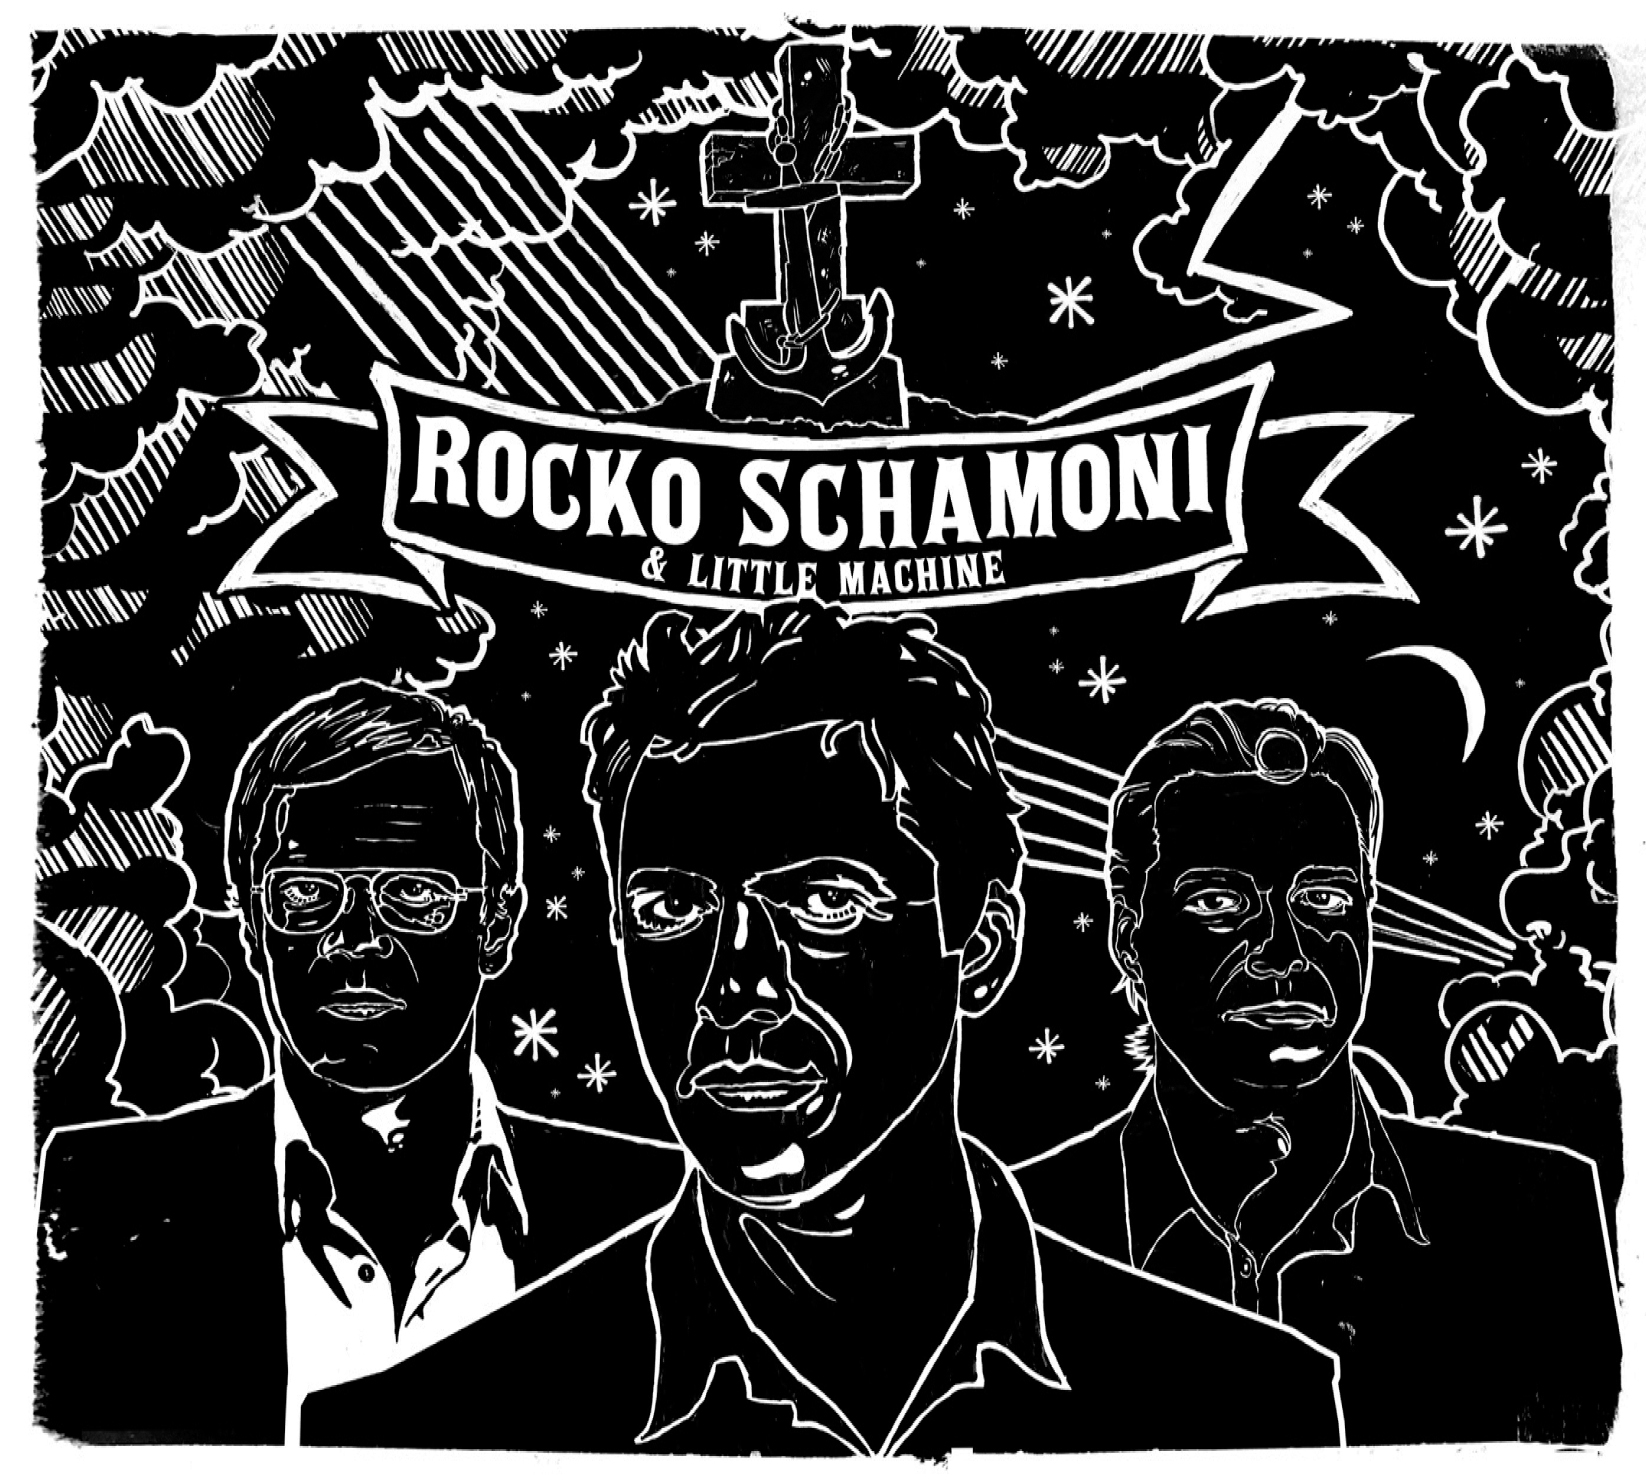 Rocko Schamoni - Rocko Schamoni & Little Machine 1